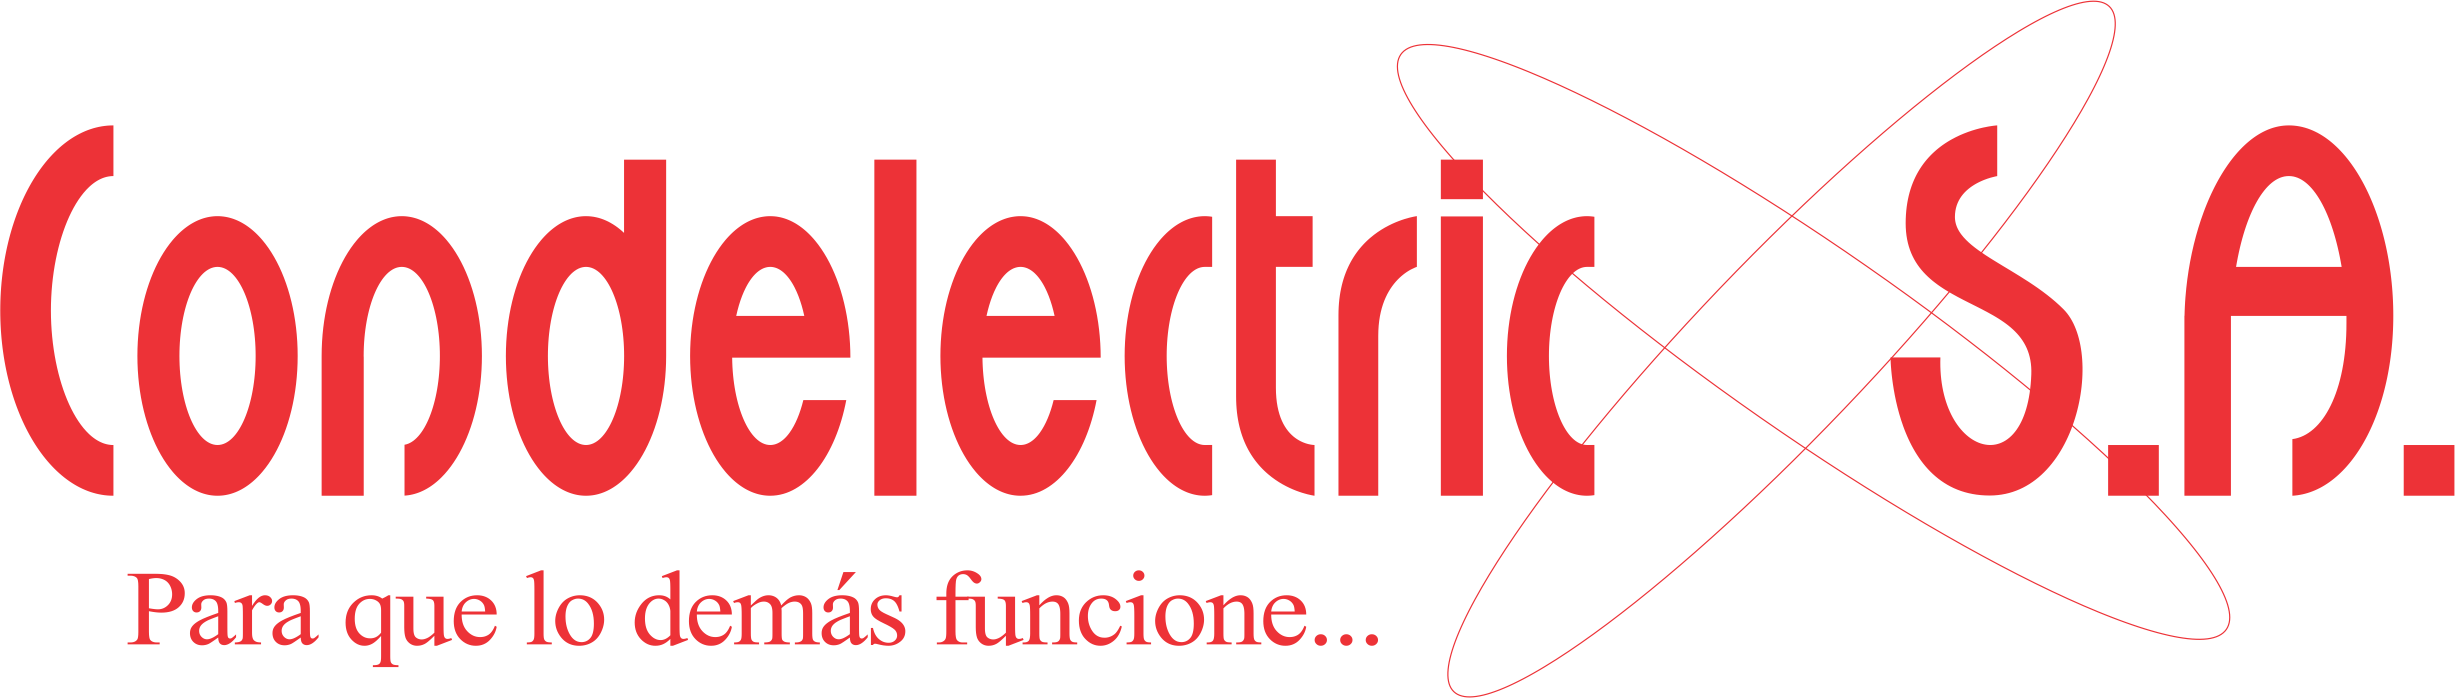 Condelectric